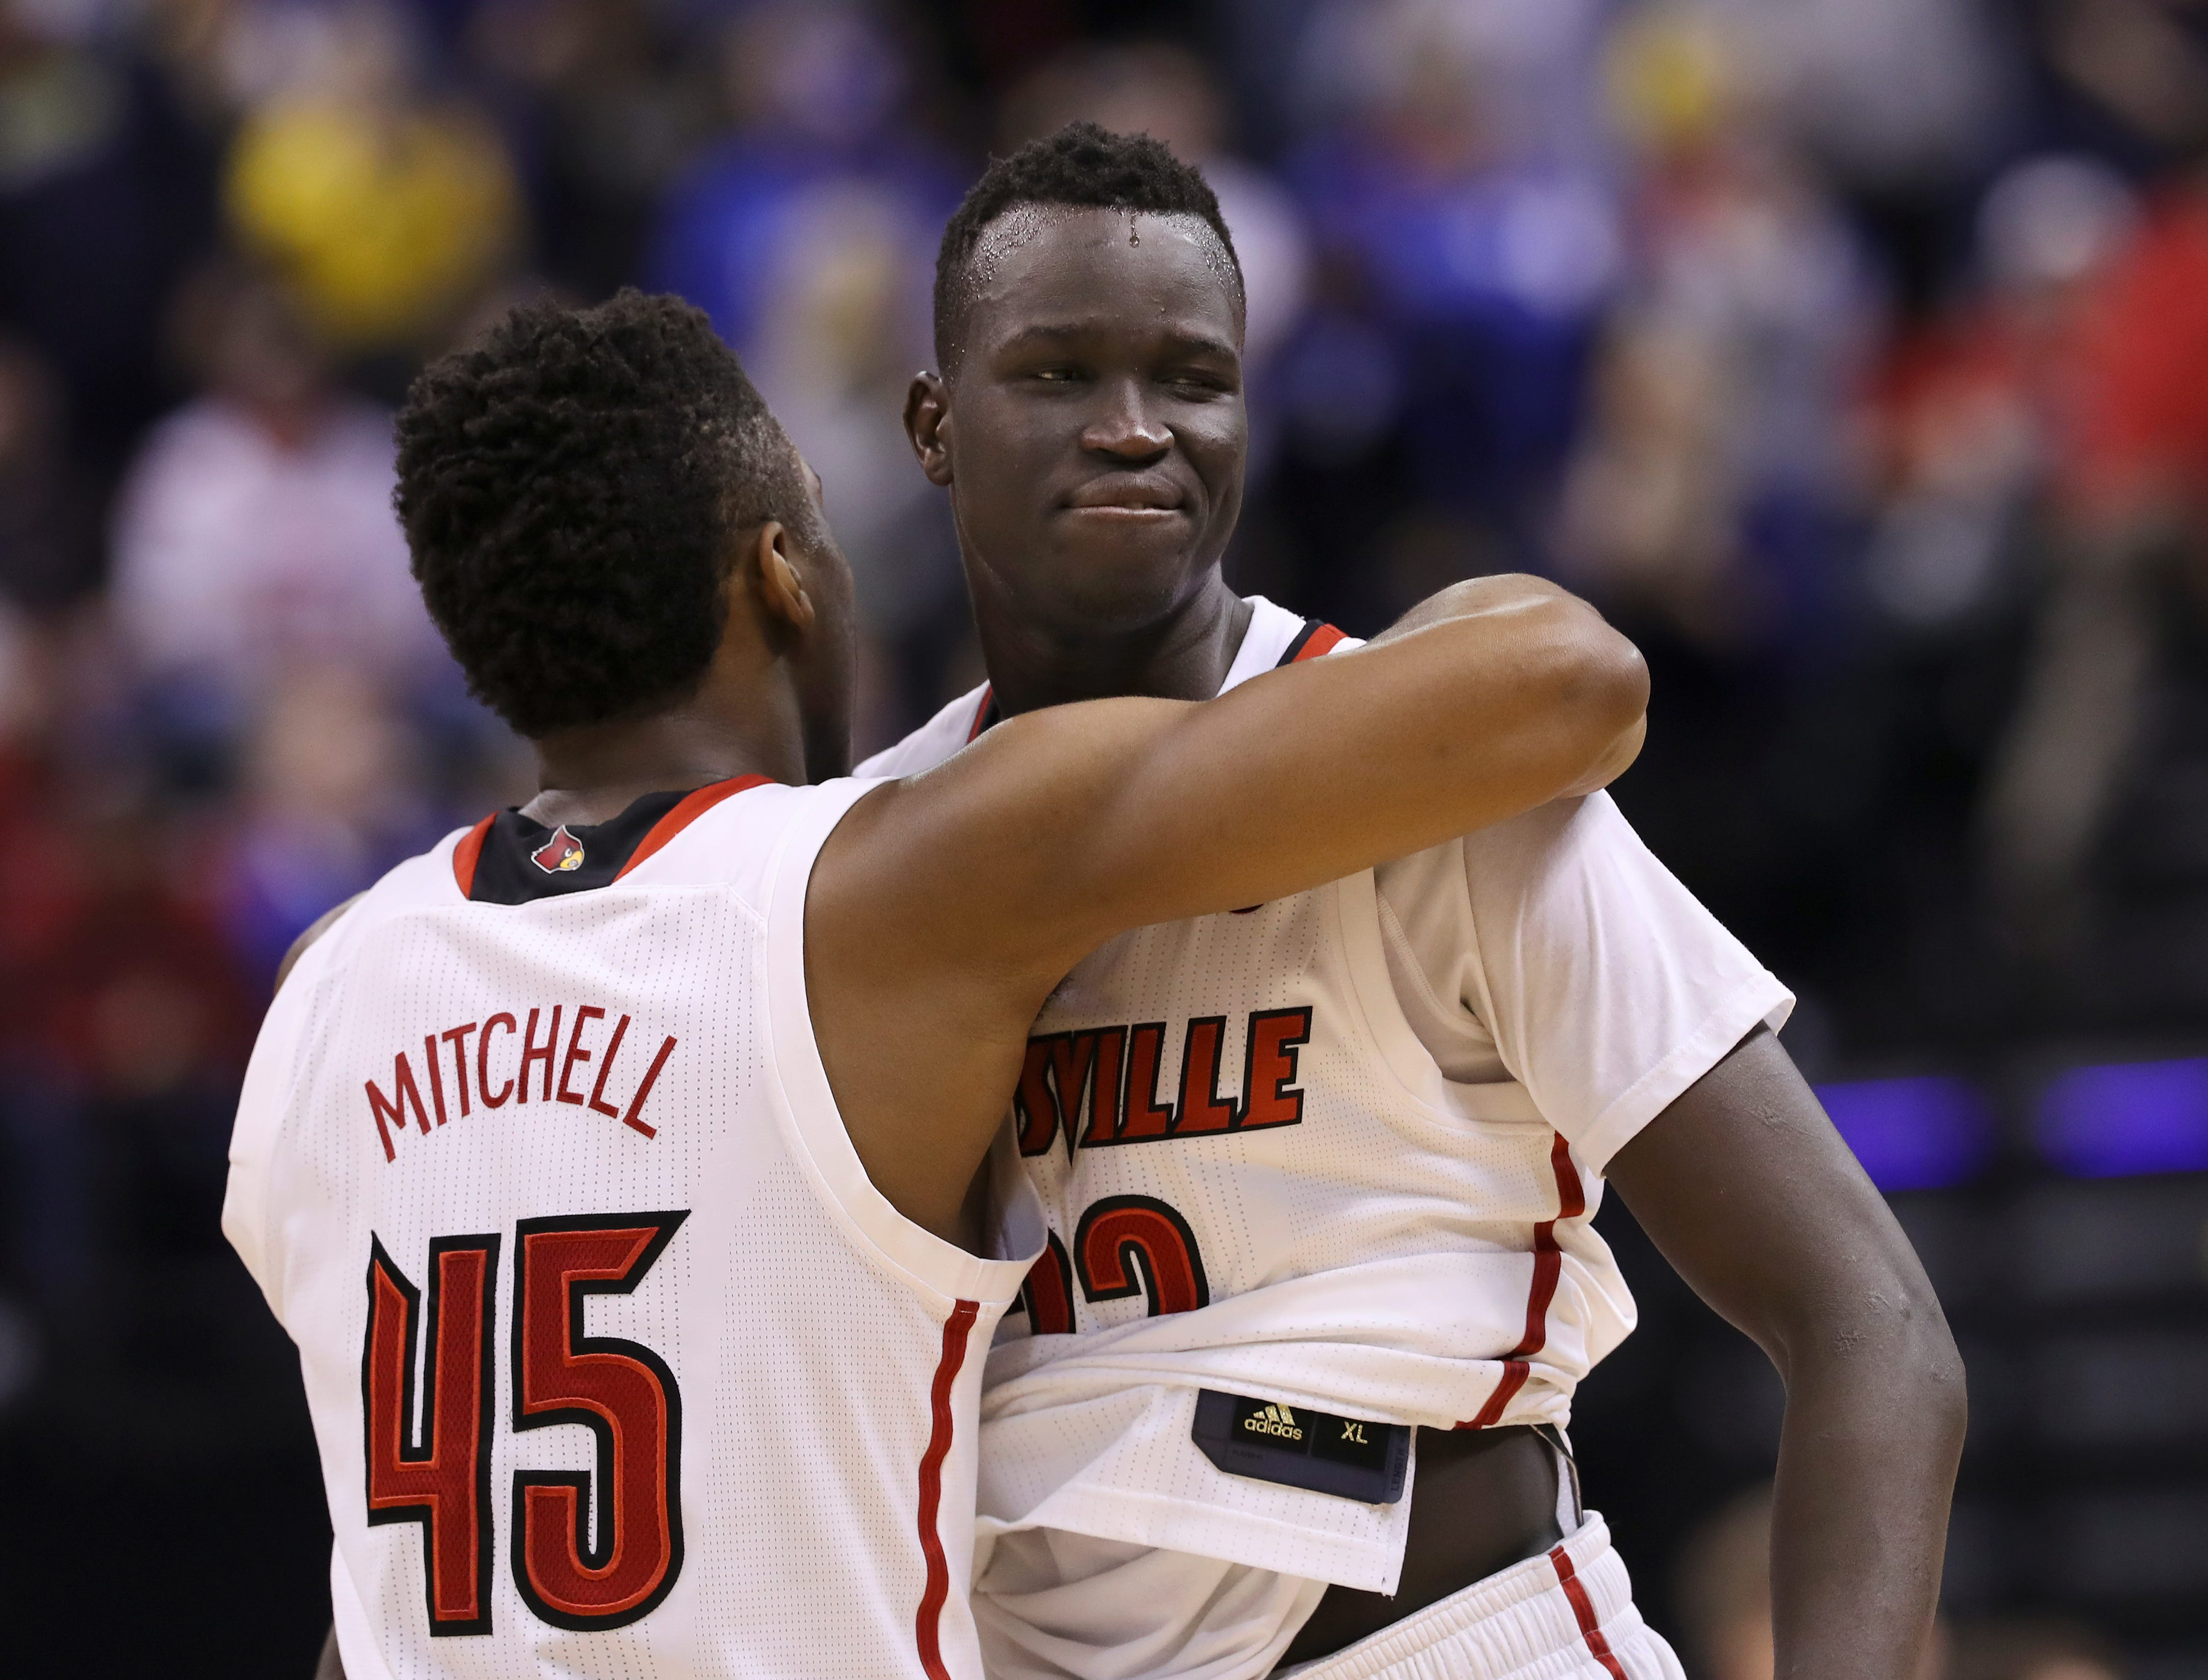 Louisville vs Syracuse Live The Louisville vs Syracuse Live 2019 College Basketball Full Match On Hd Tv live On YOUR PC TV MAC MOBILE AND ALL DEVICES Also there